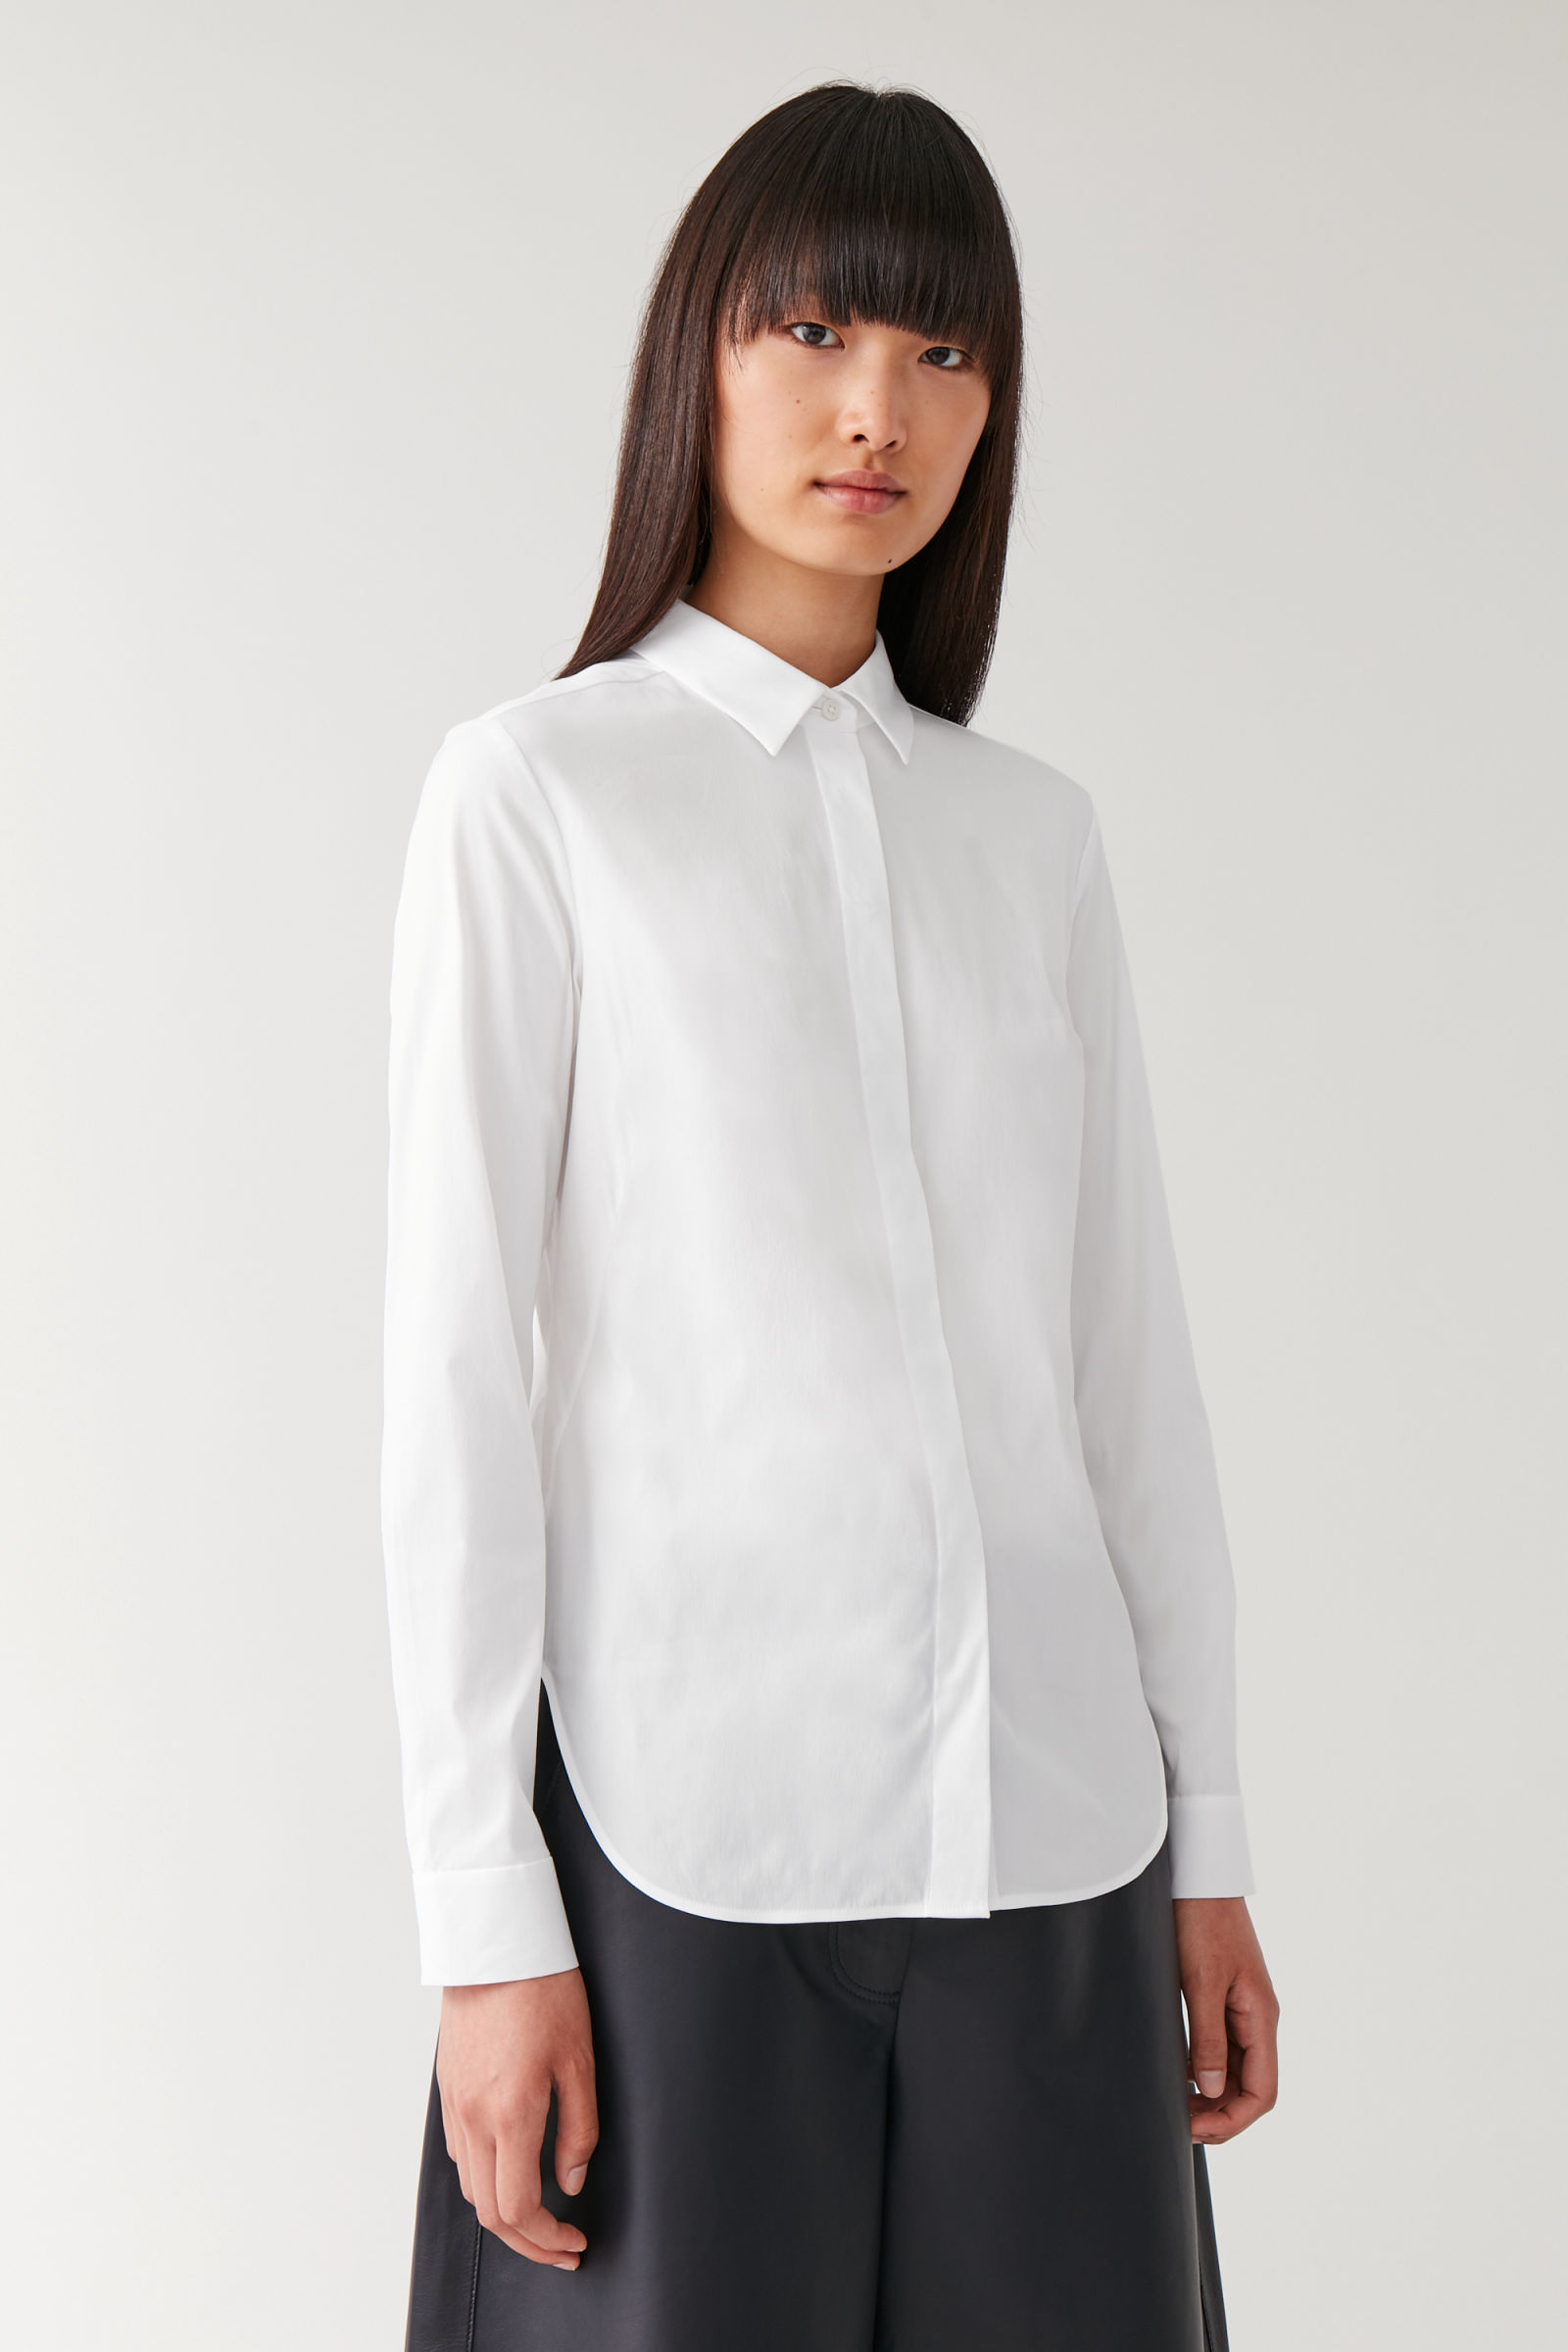 COS SLIM-FIT SHIRT,White